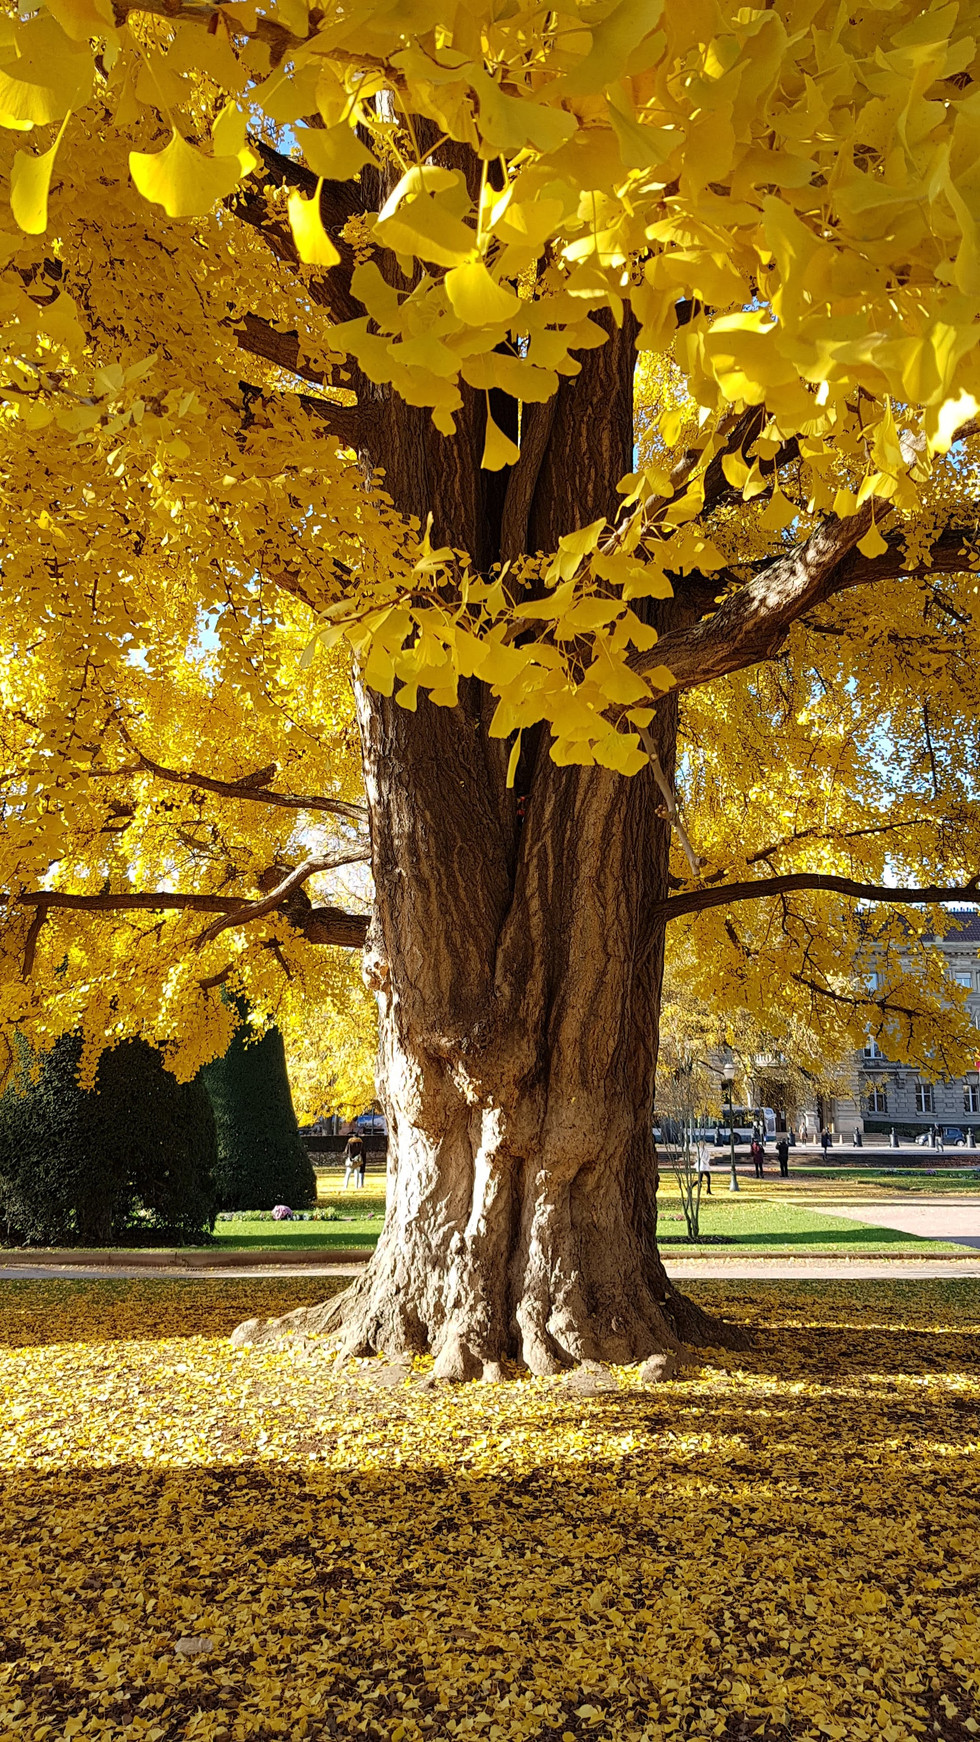 Gingko in the a